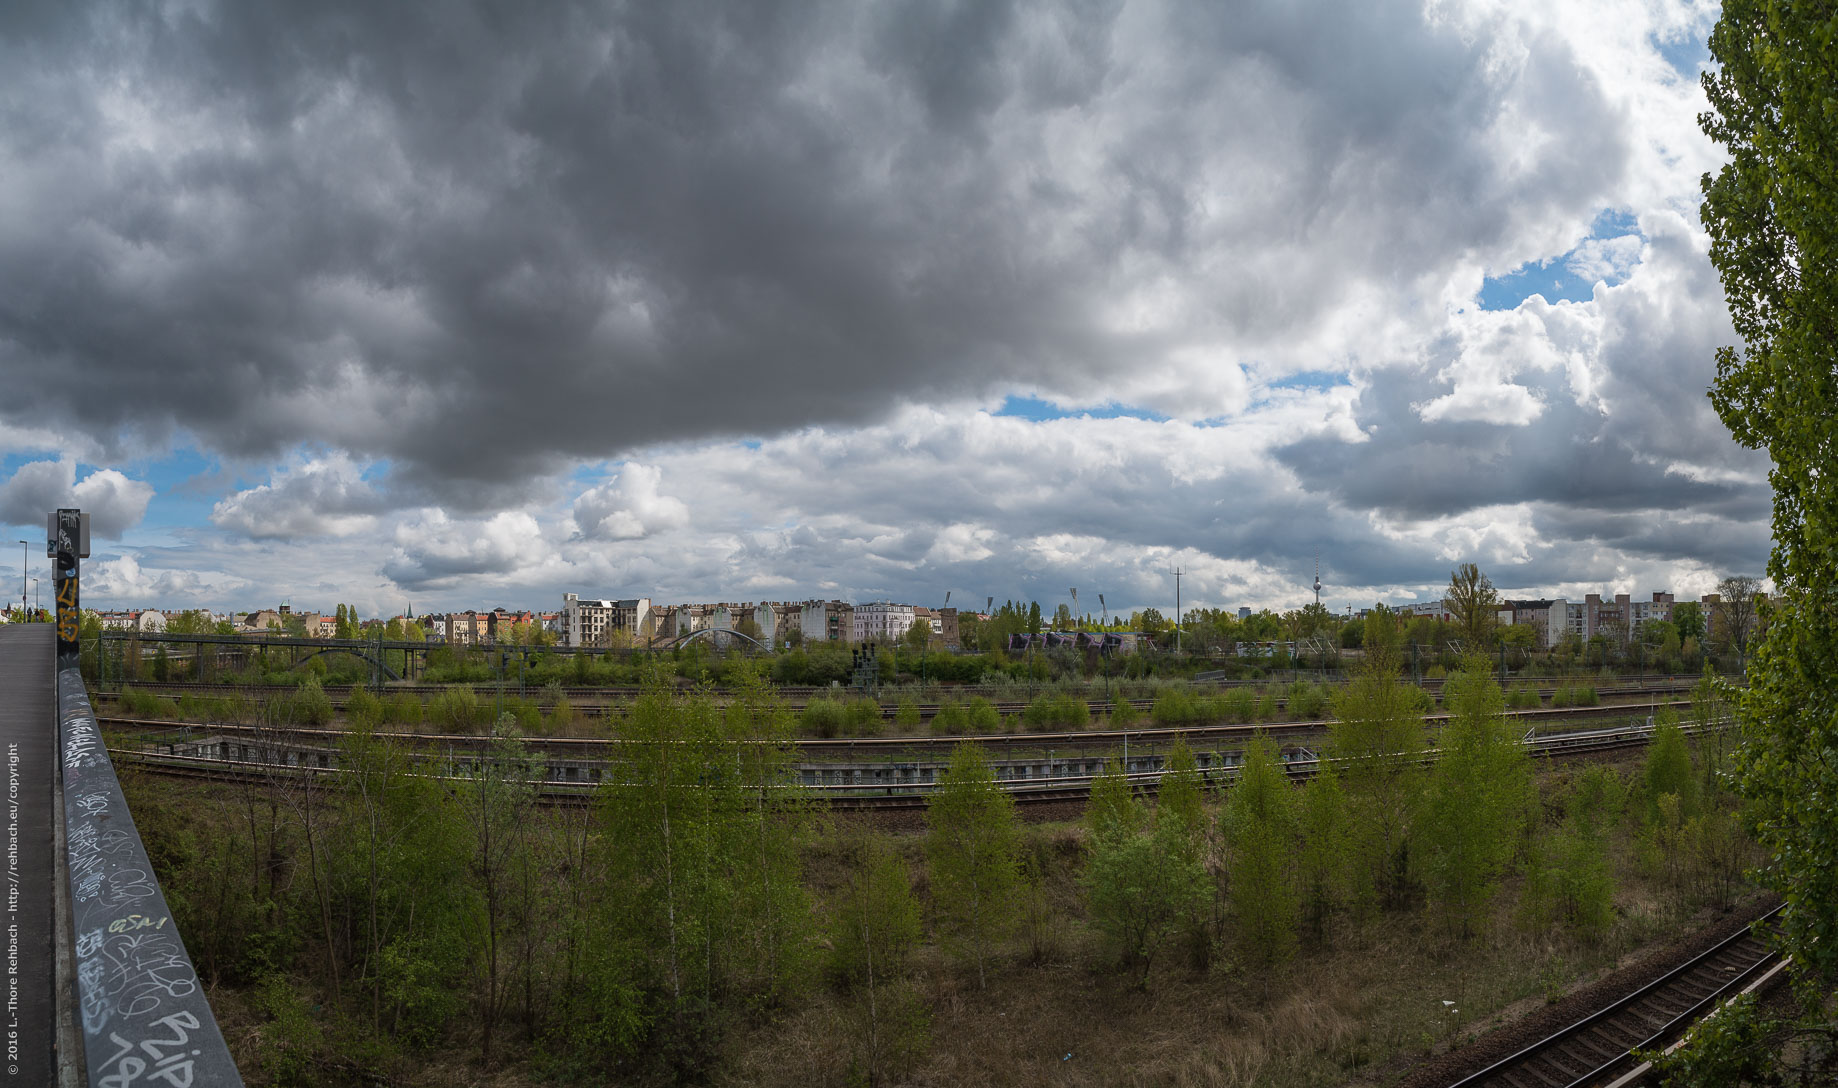 Train-track Wilderness in Berlin, close to Mauerpark